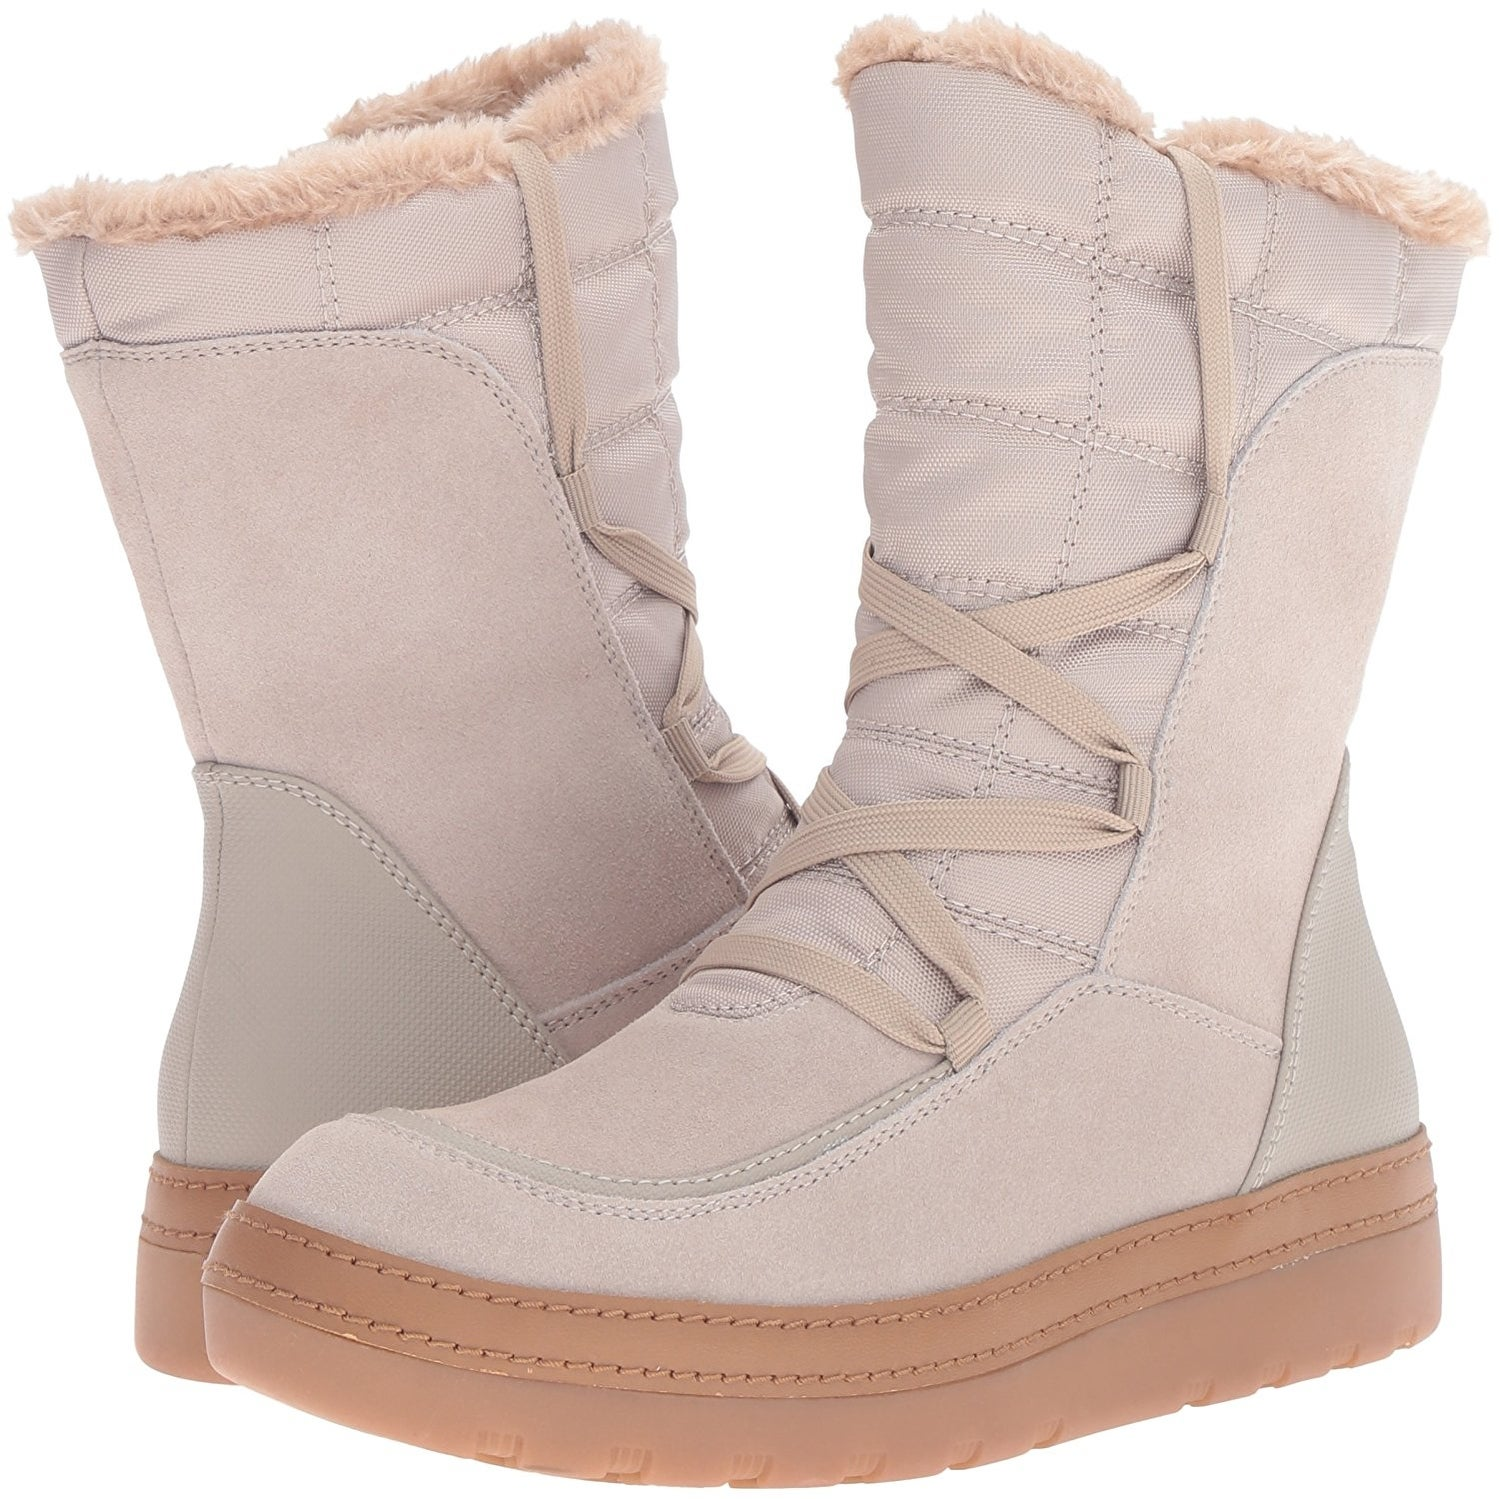 81b66a0eb2bb Shop Bare Traps Womens Lancy Closed Toe Mid-Calf Cold Weather Boots - Free  Shipping On Orders Over  45 - Overstock - 16703142